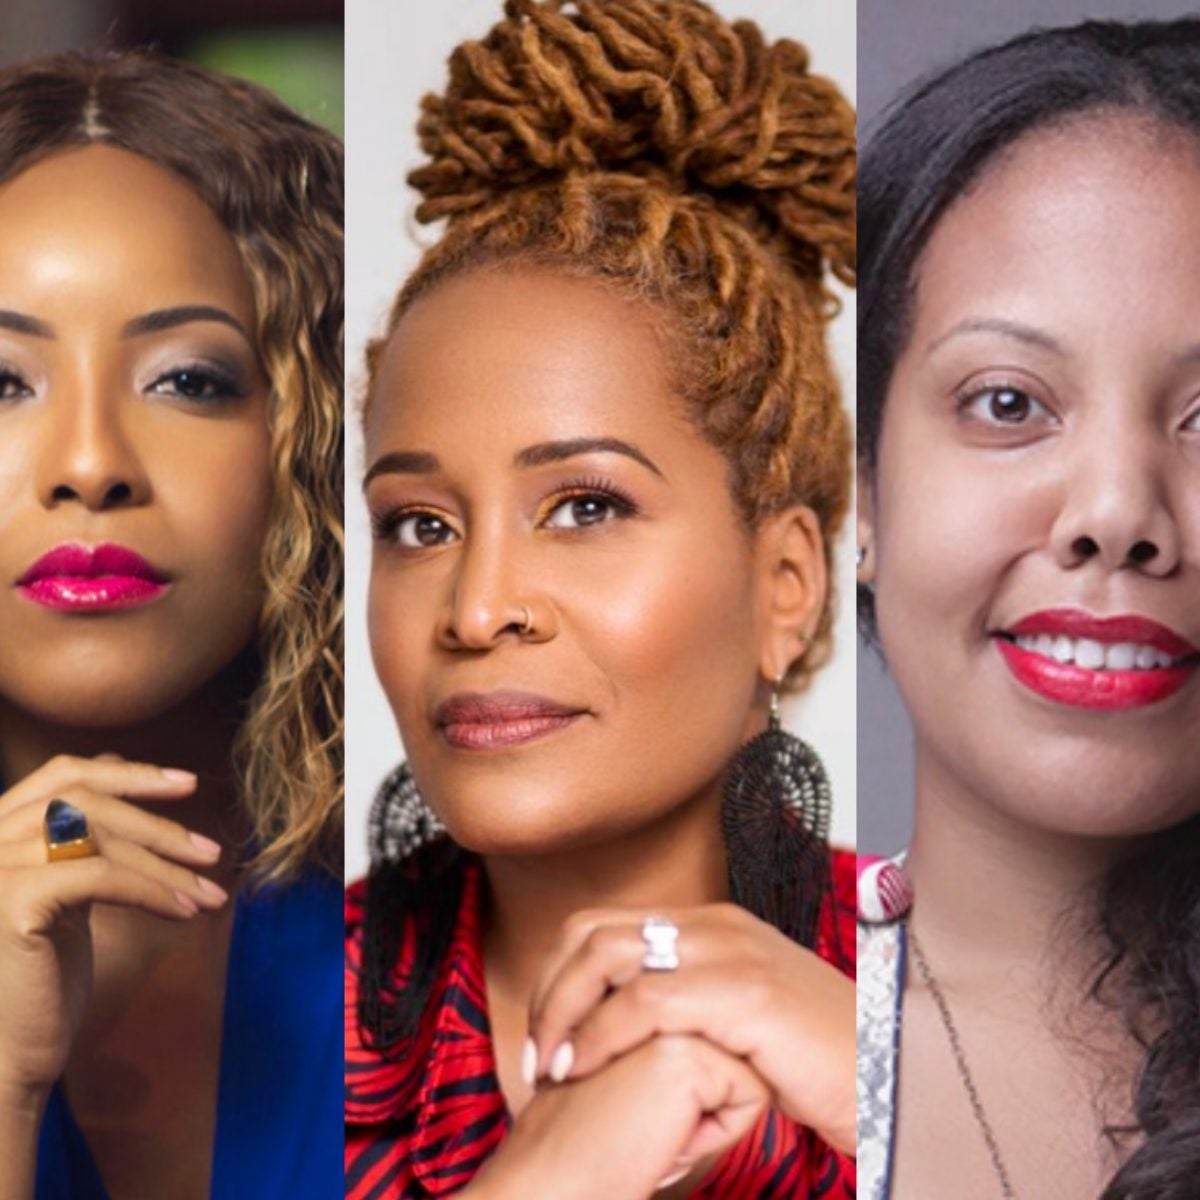 Meet 3 Black Women Working To Increase Opportunities For Film & Television Creatives In Ghana